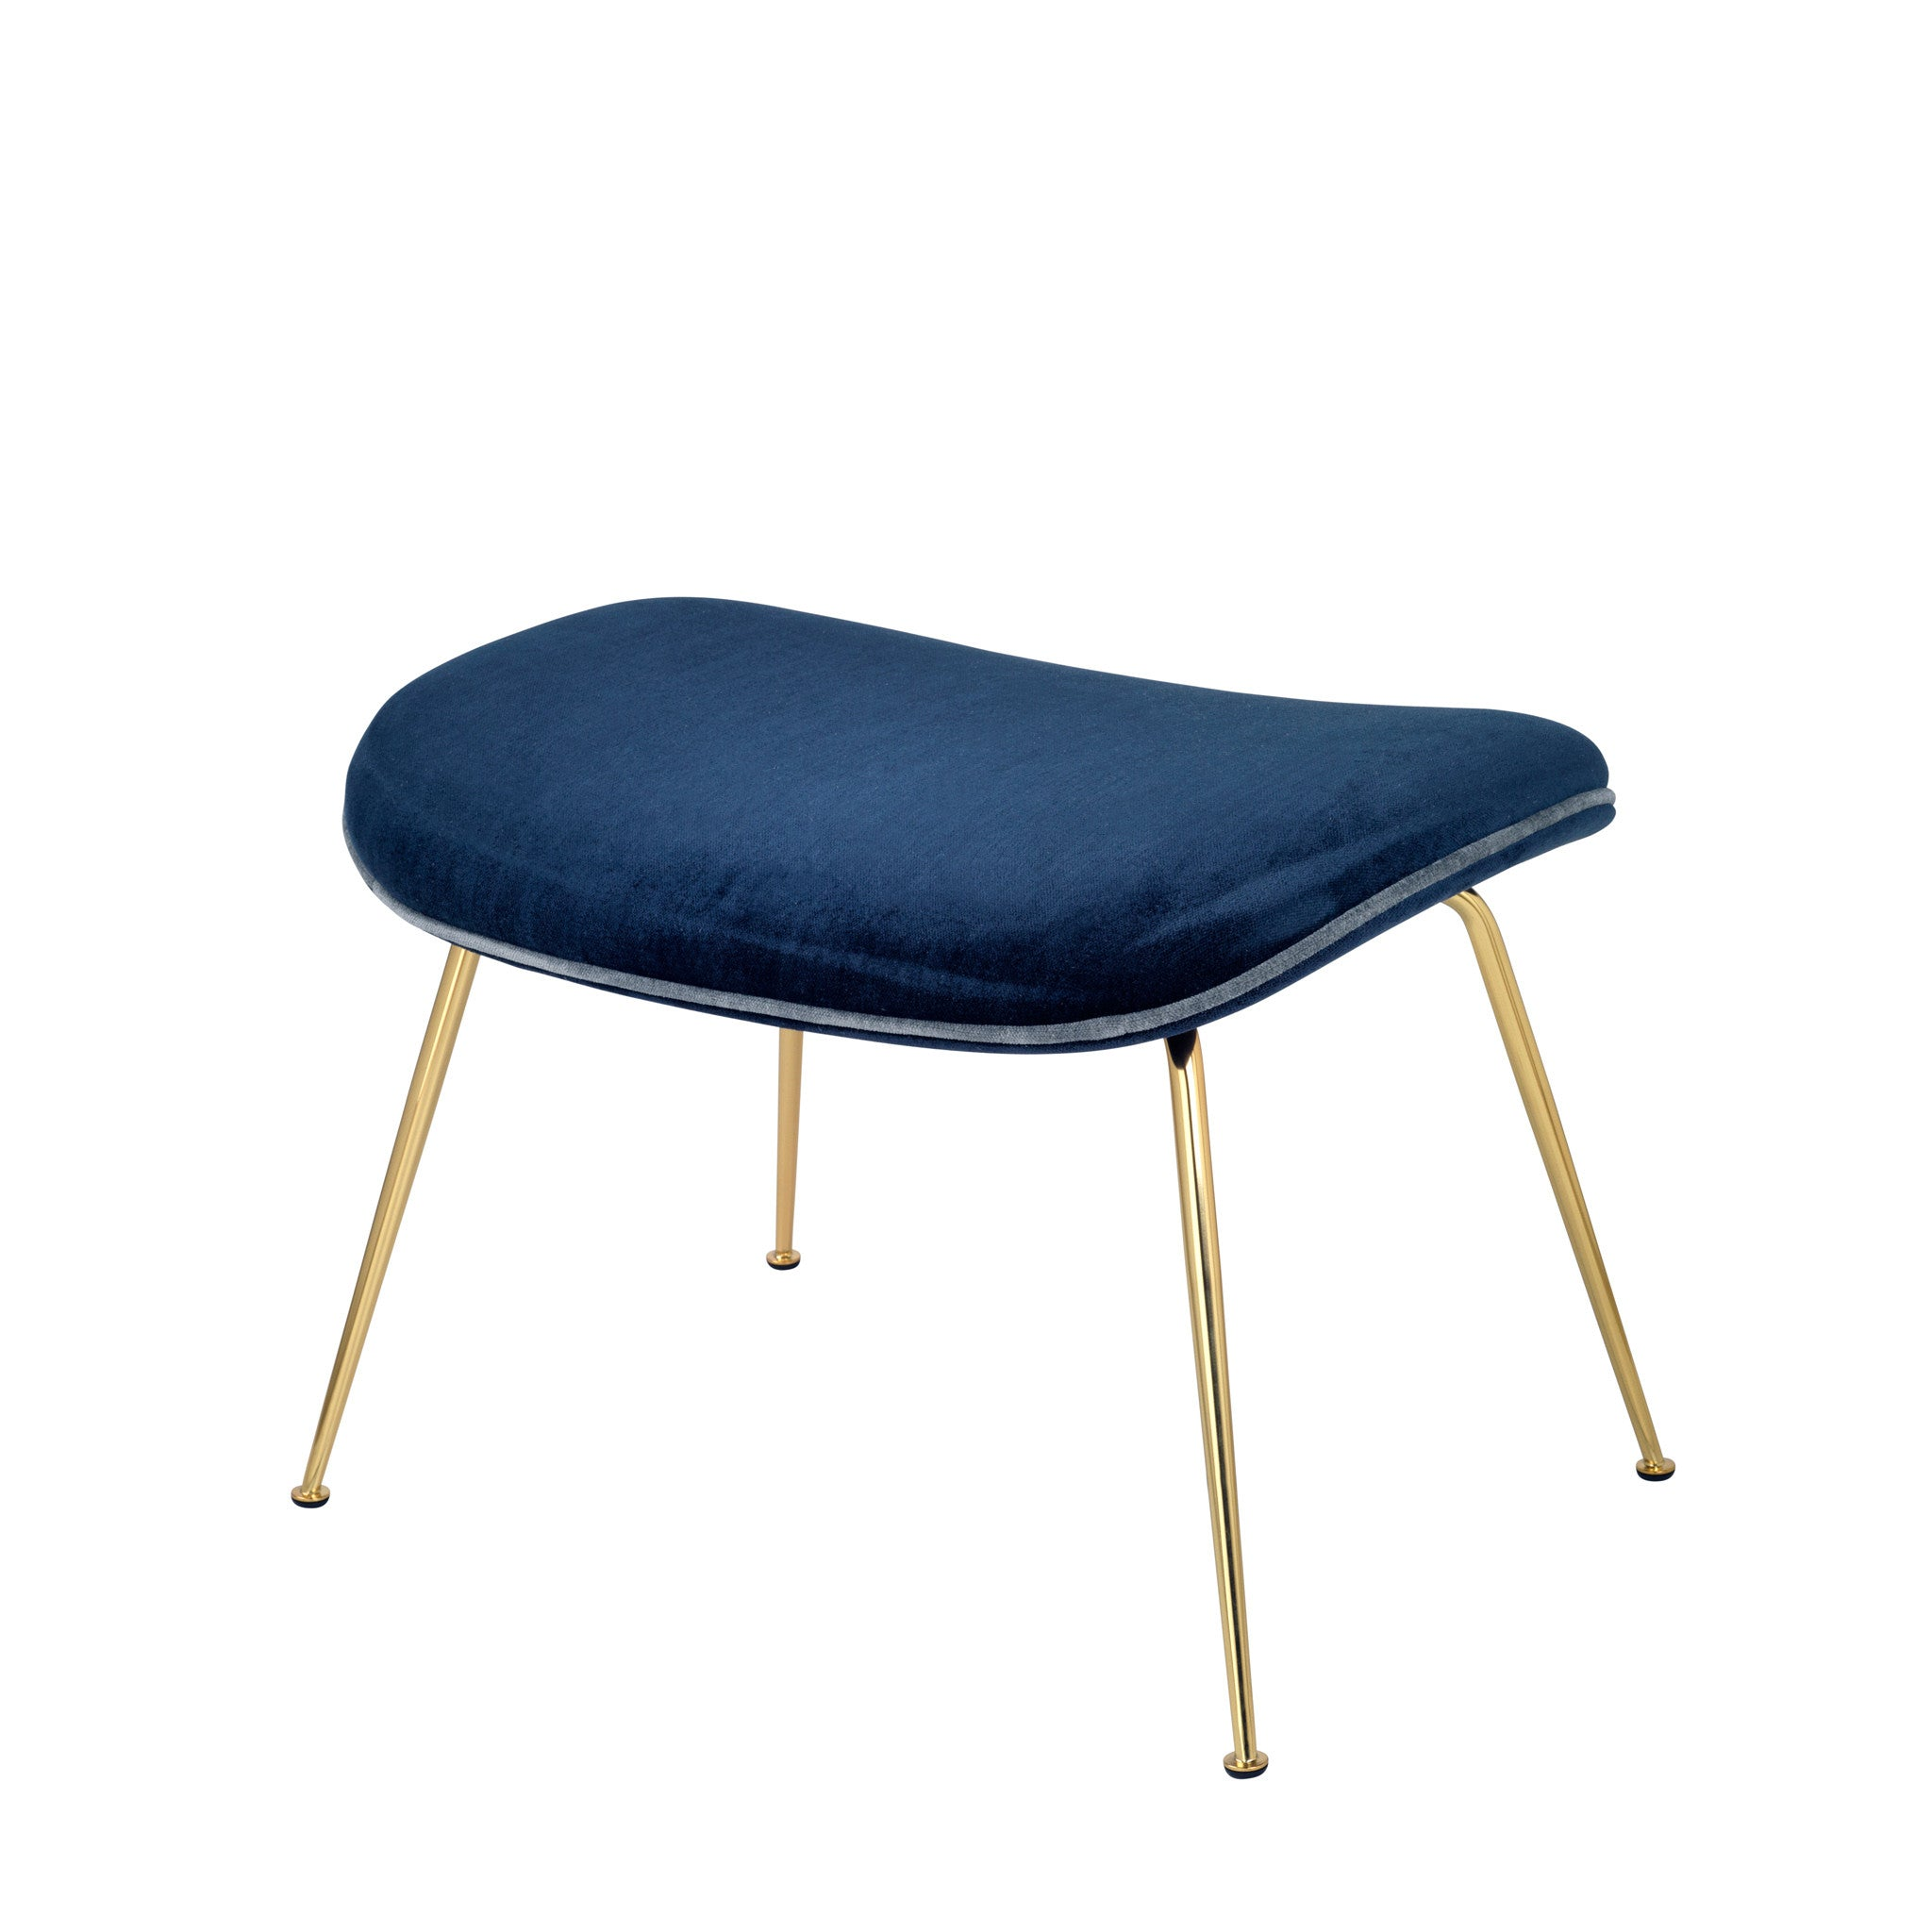 Beetle Footstool - Velluto di Cotone, Furniture Footstool, Gubi, Places and Spaces